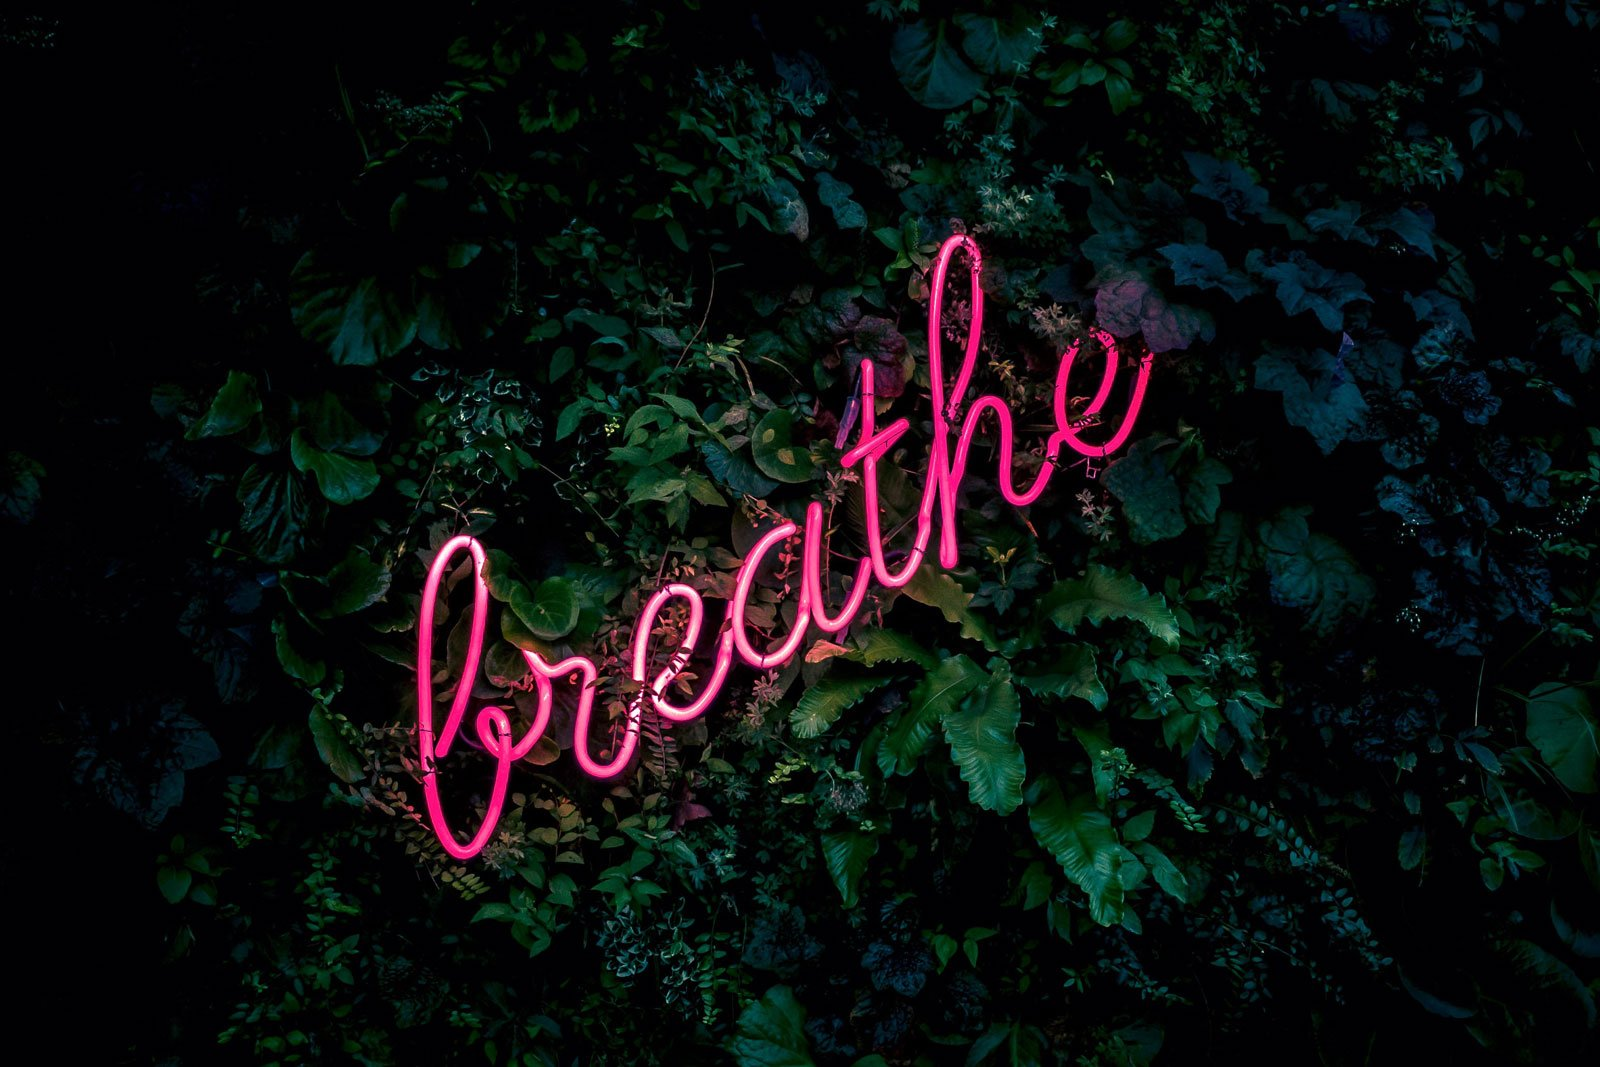 Image of the word 'breathe' in pink letters in front of some leaves